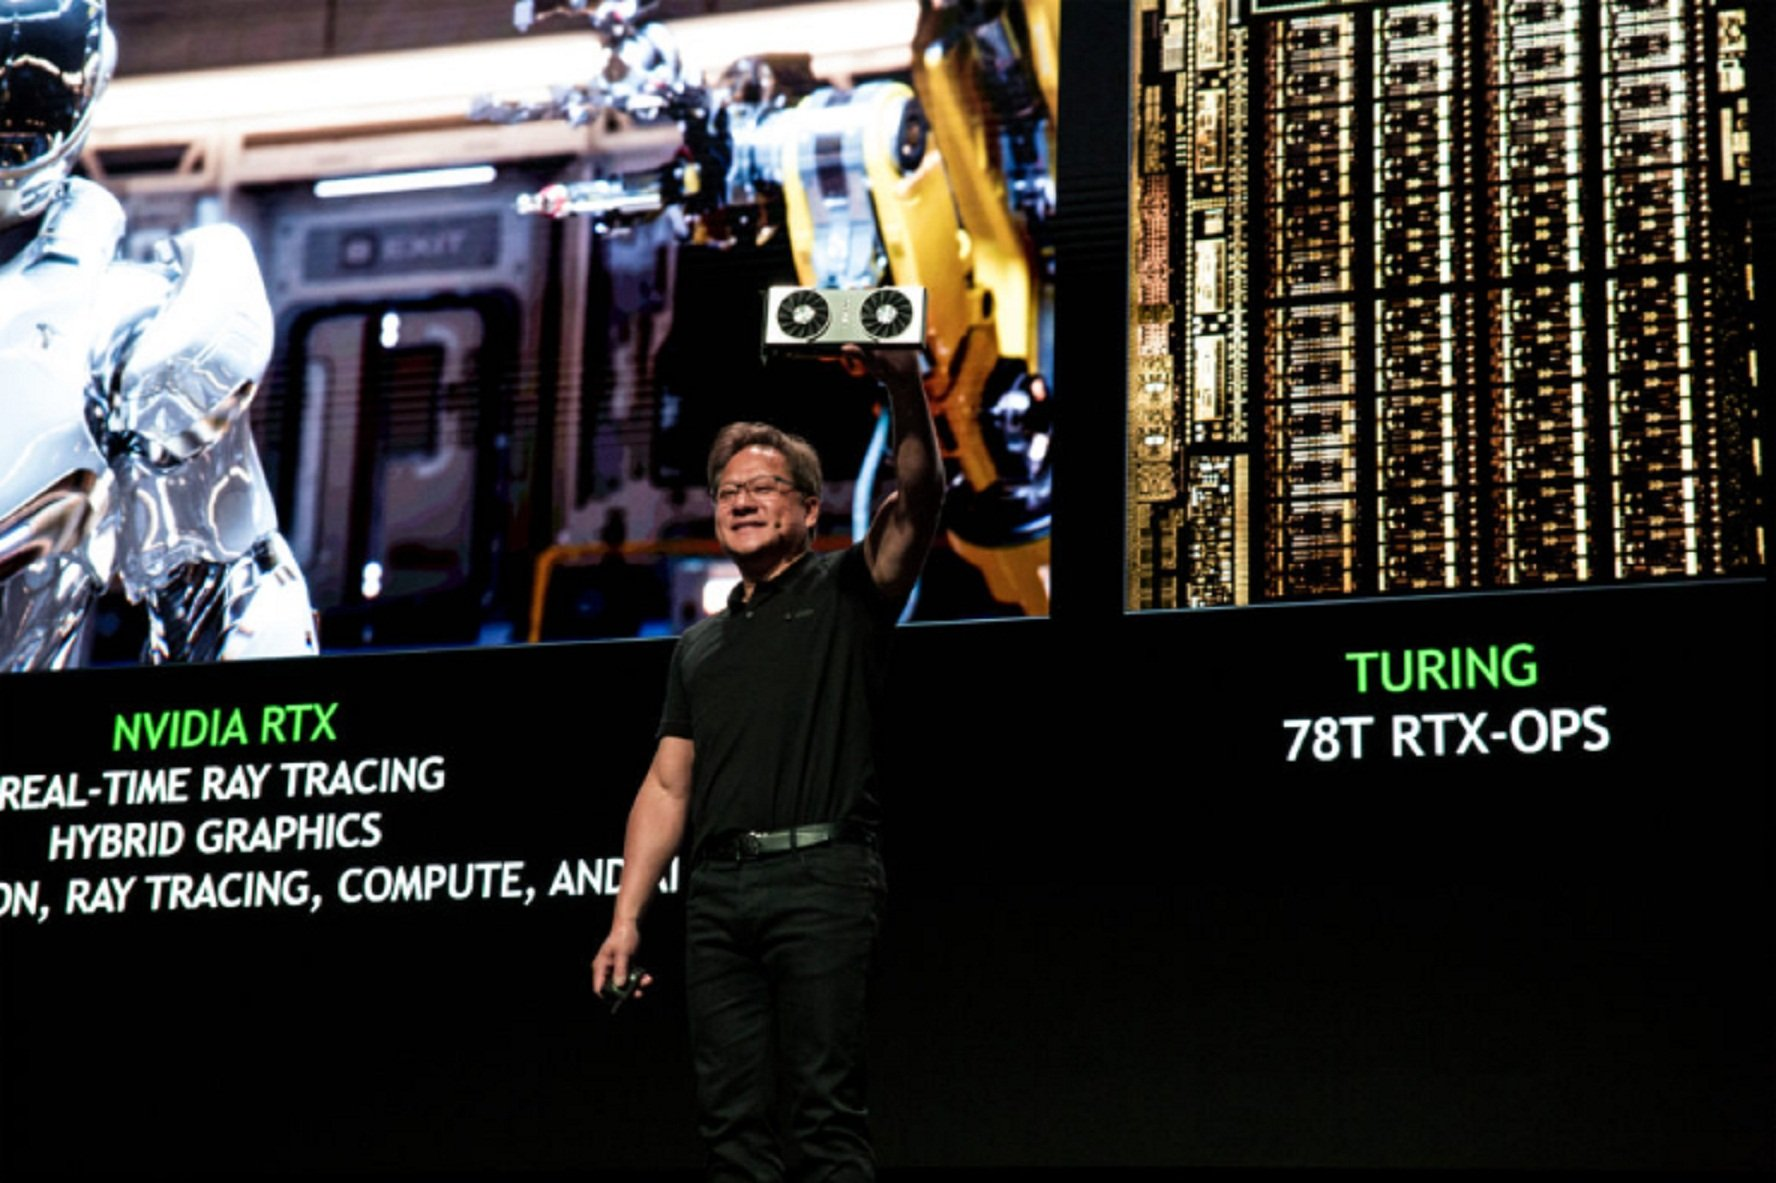 Owners Of Nvidia's New 3080 GPU Have Claimed Driver Issues Are Rendering Games Unplayable